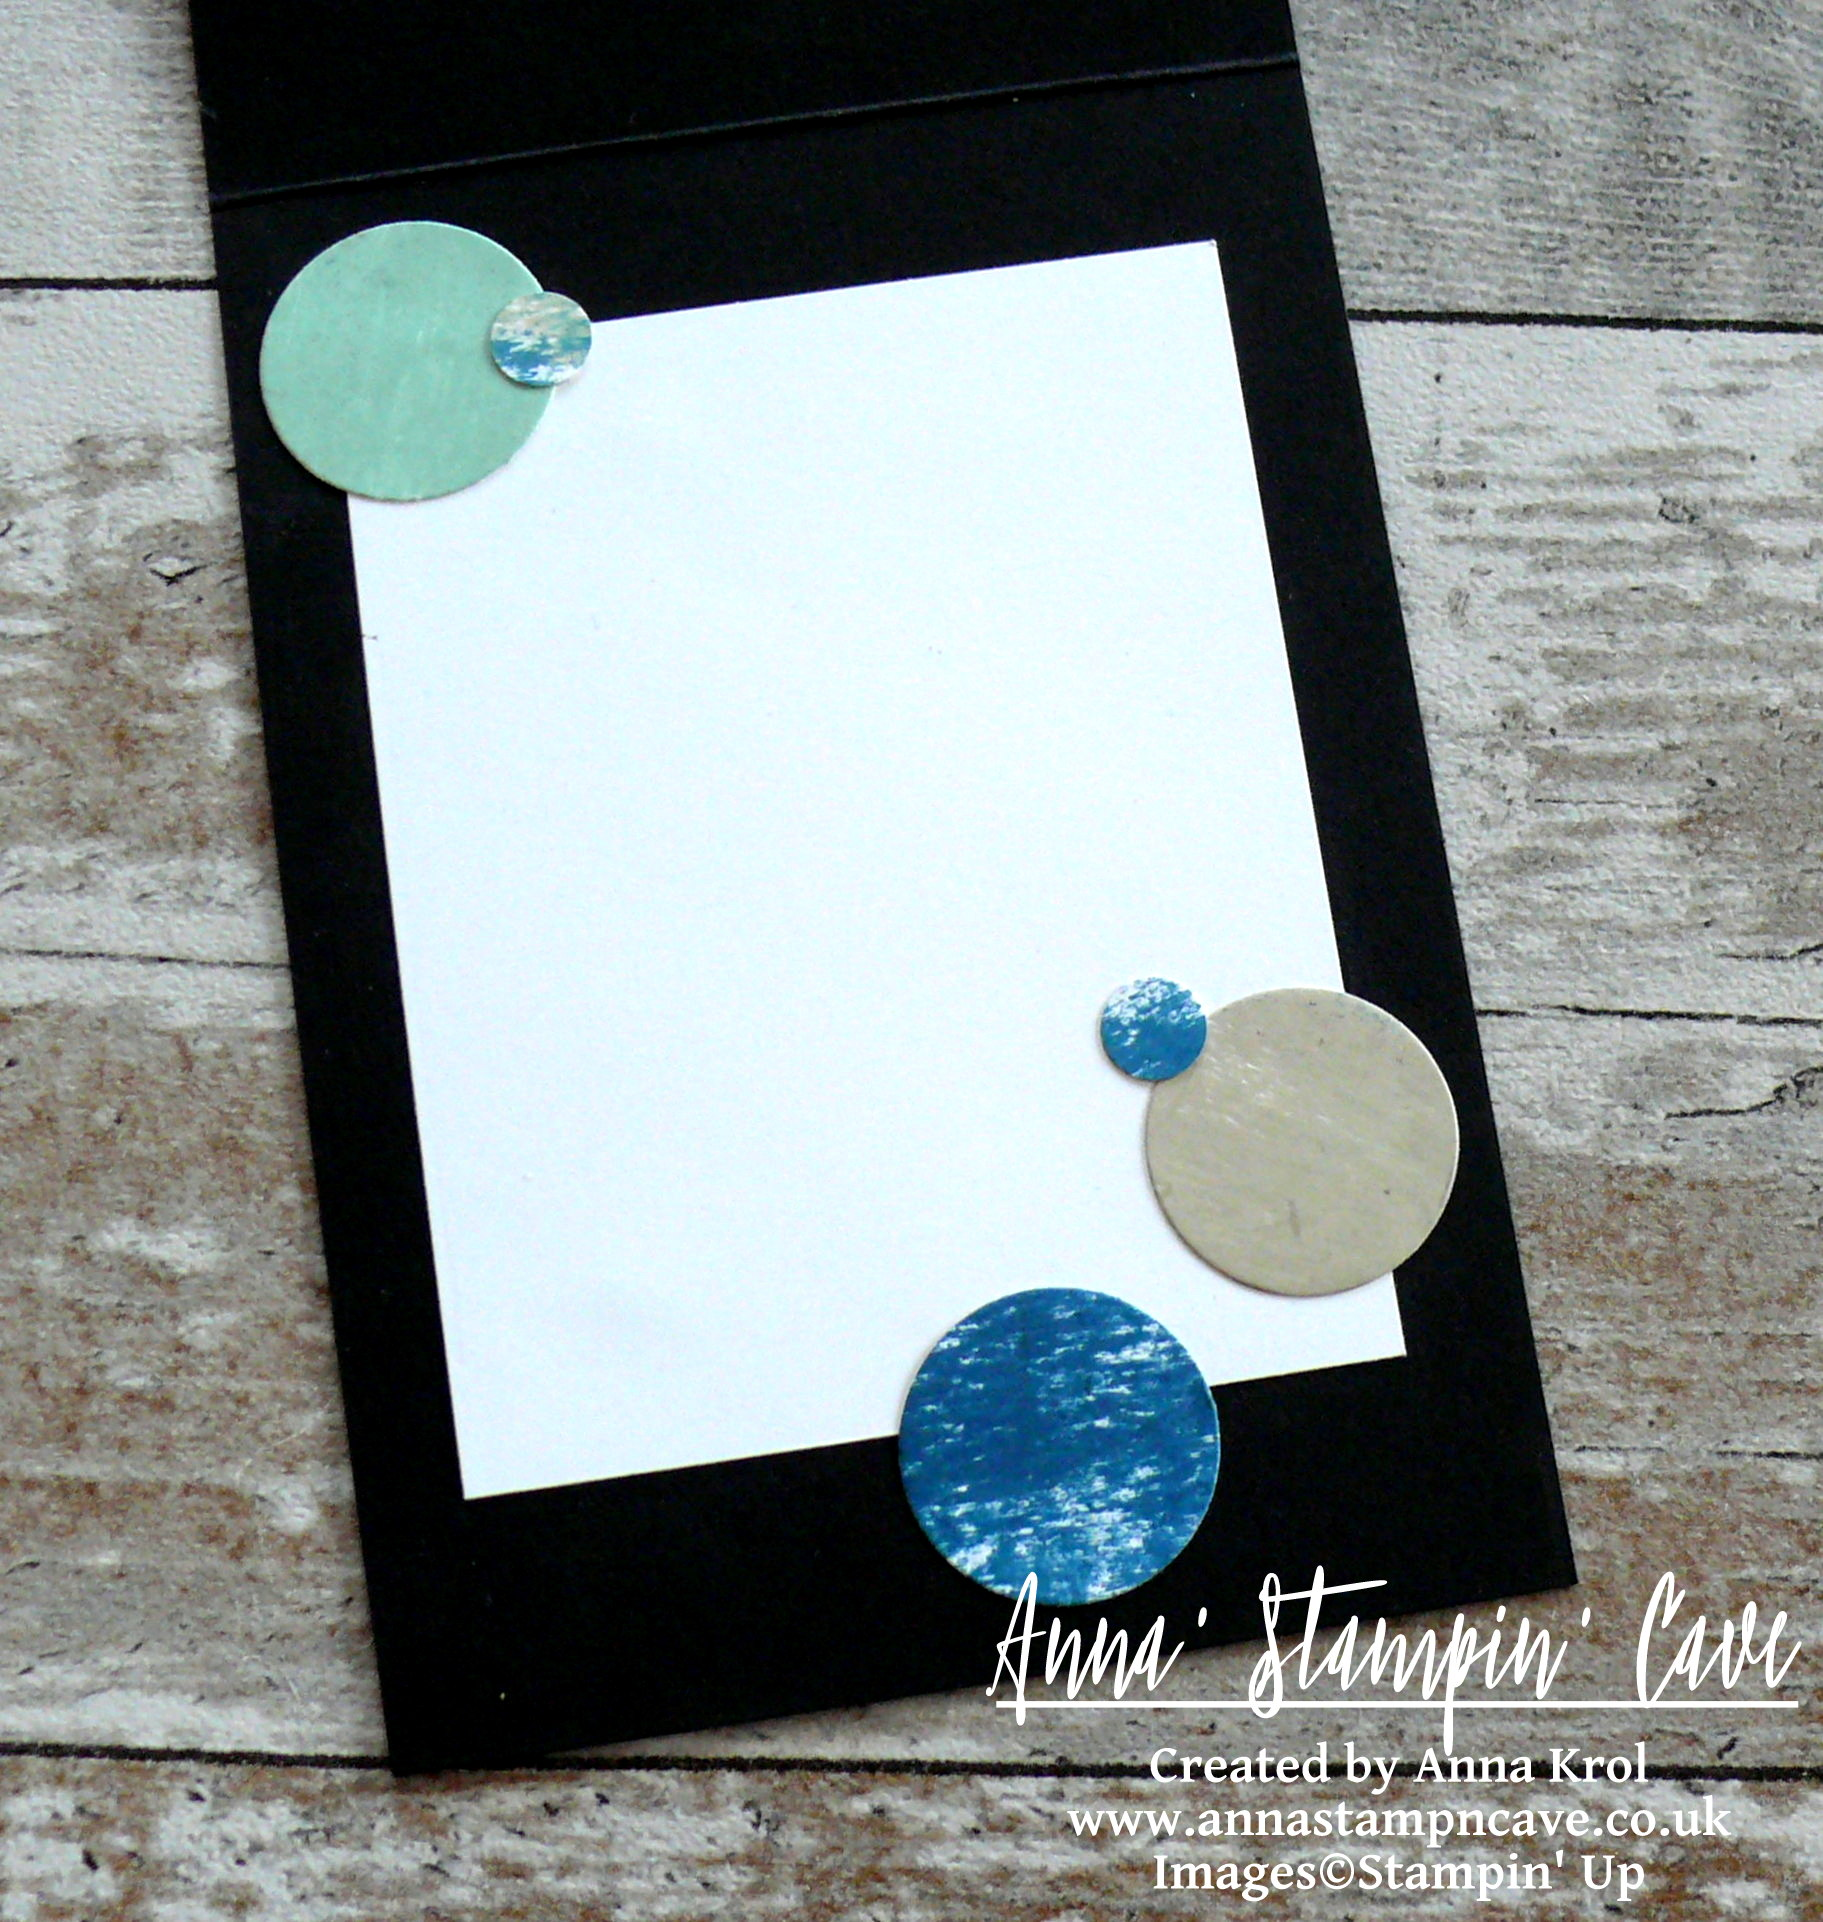 Anna' Stampin' Cave - Stampin' Up! Painter's Palette and Blooms and Bliss DSP - A Little Expression Of Love Card - card inside